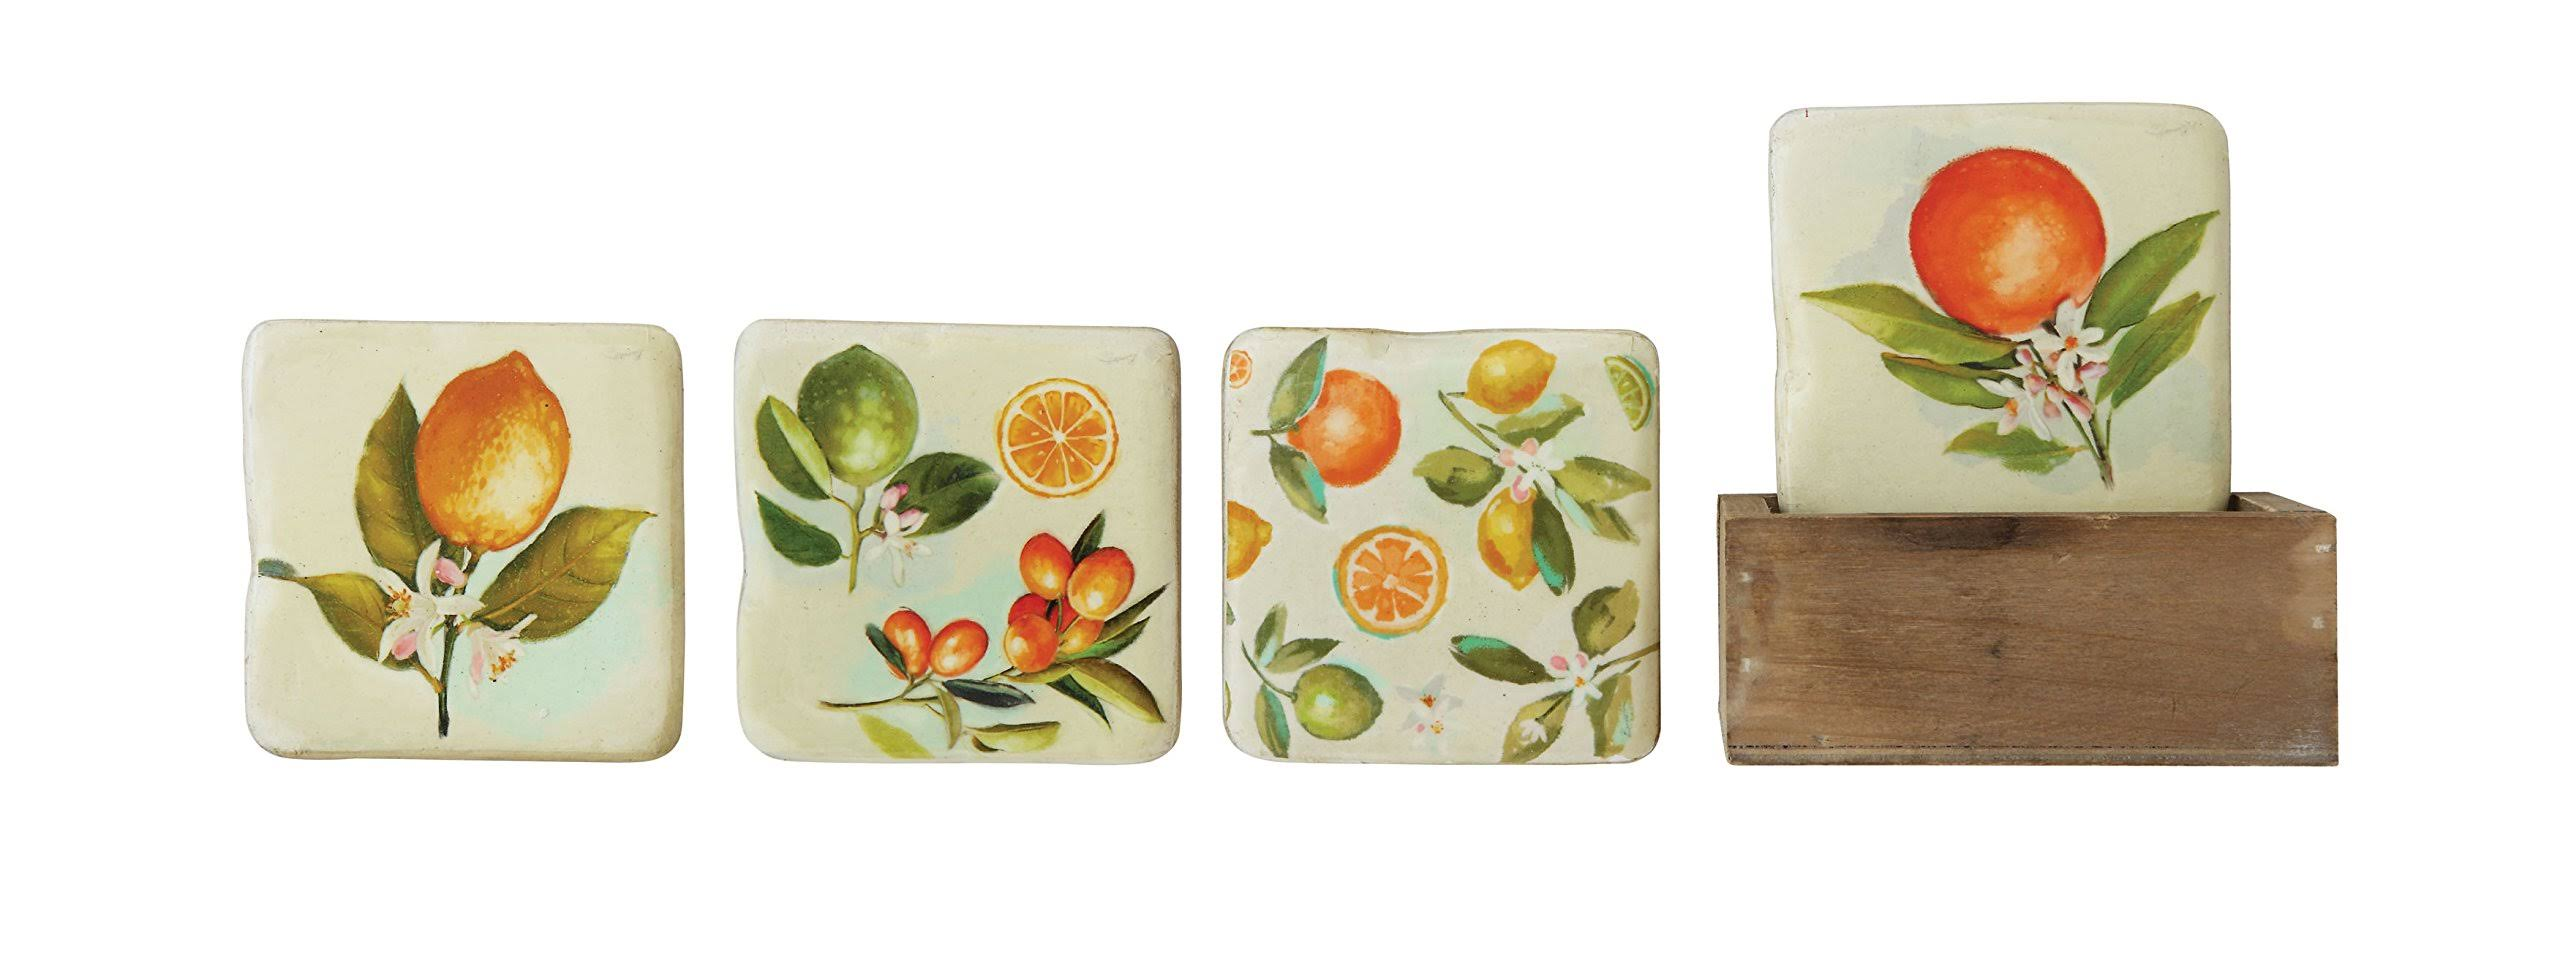 Creative Co-op DA9520 4 Citrus Image Square Resin Coasters in Wood Box